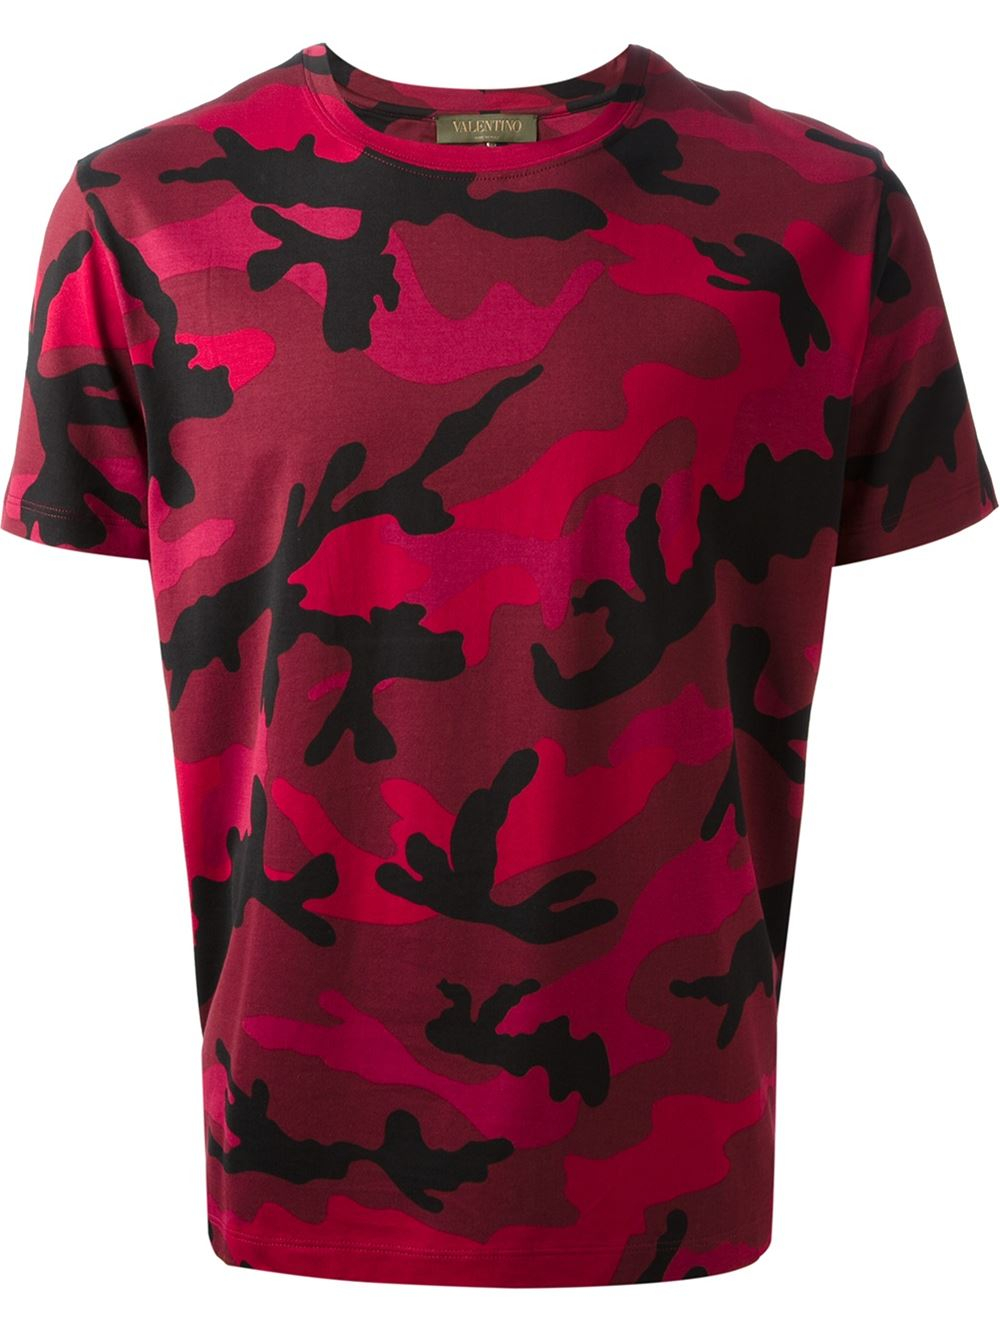 Valentino camouflage tshirt in red for men lyst for Red valentino t shirt